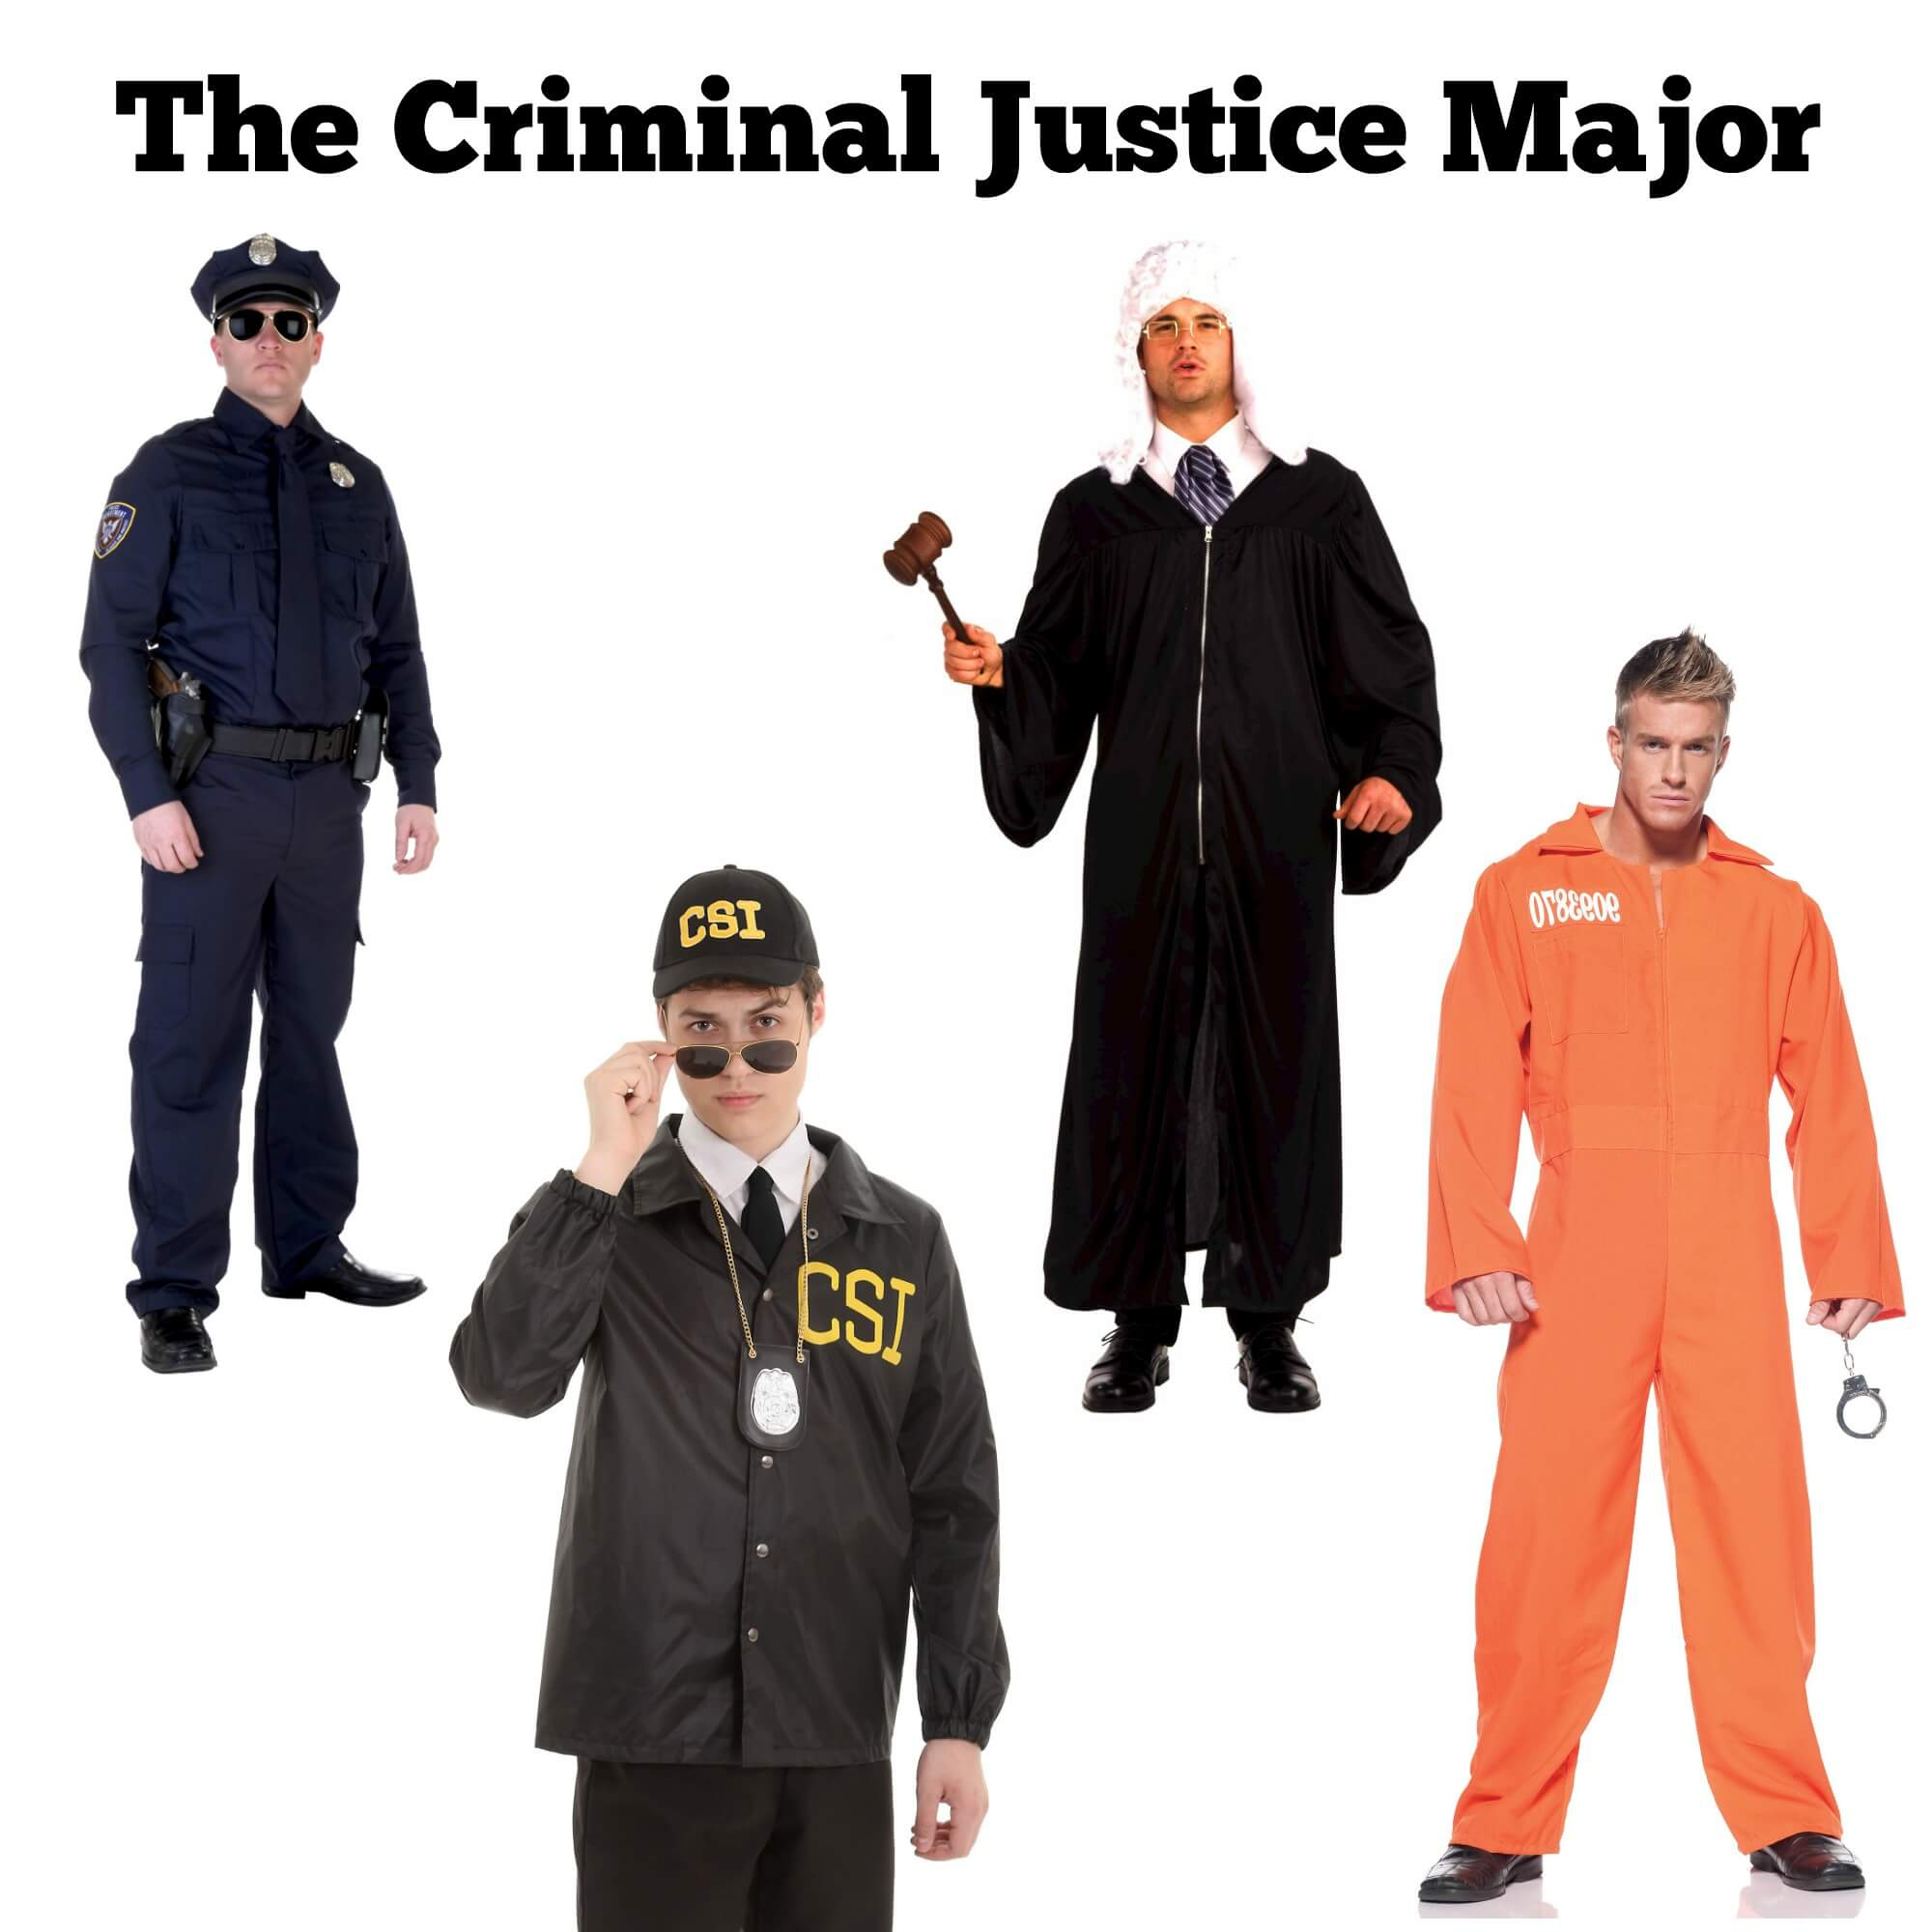 Halloween costume ideas for law enforcement majors